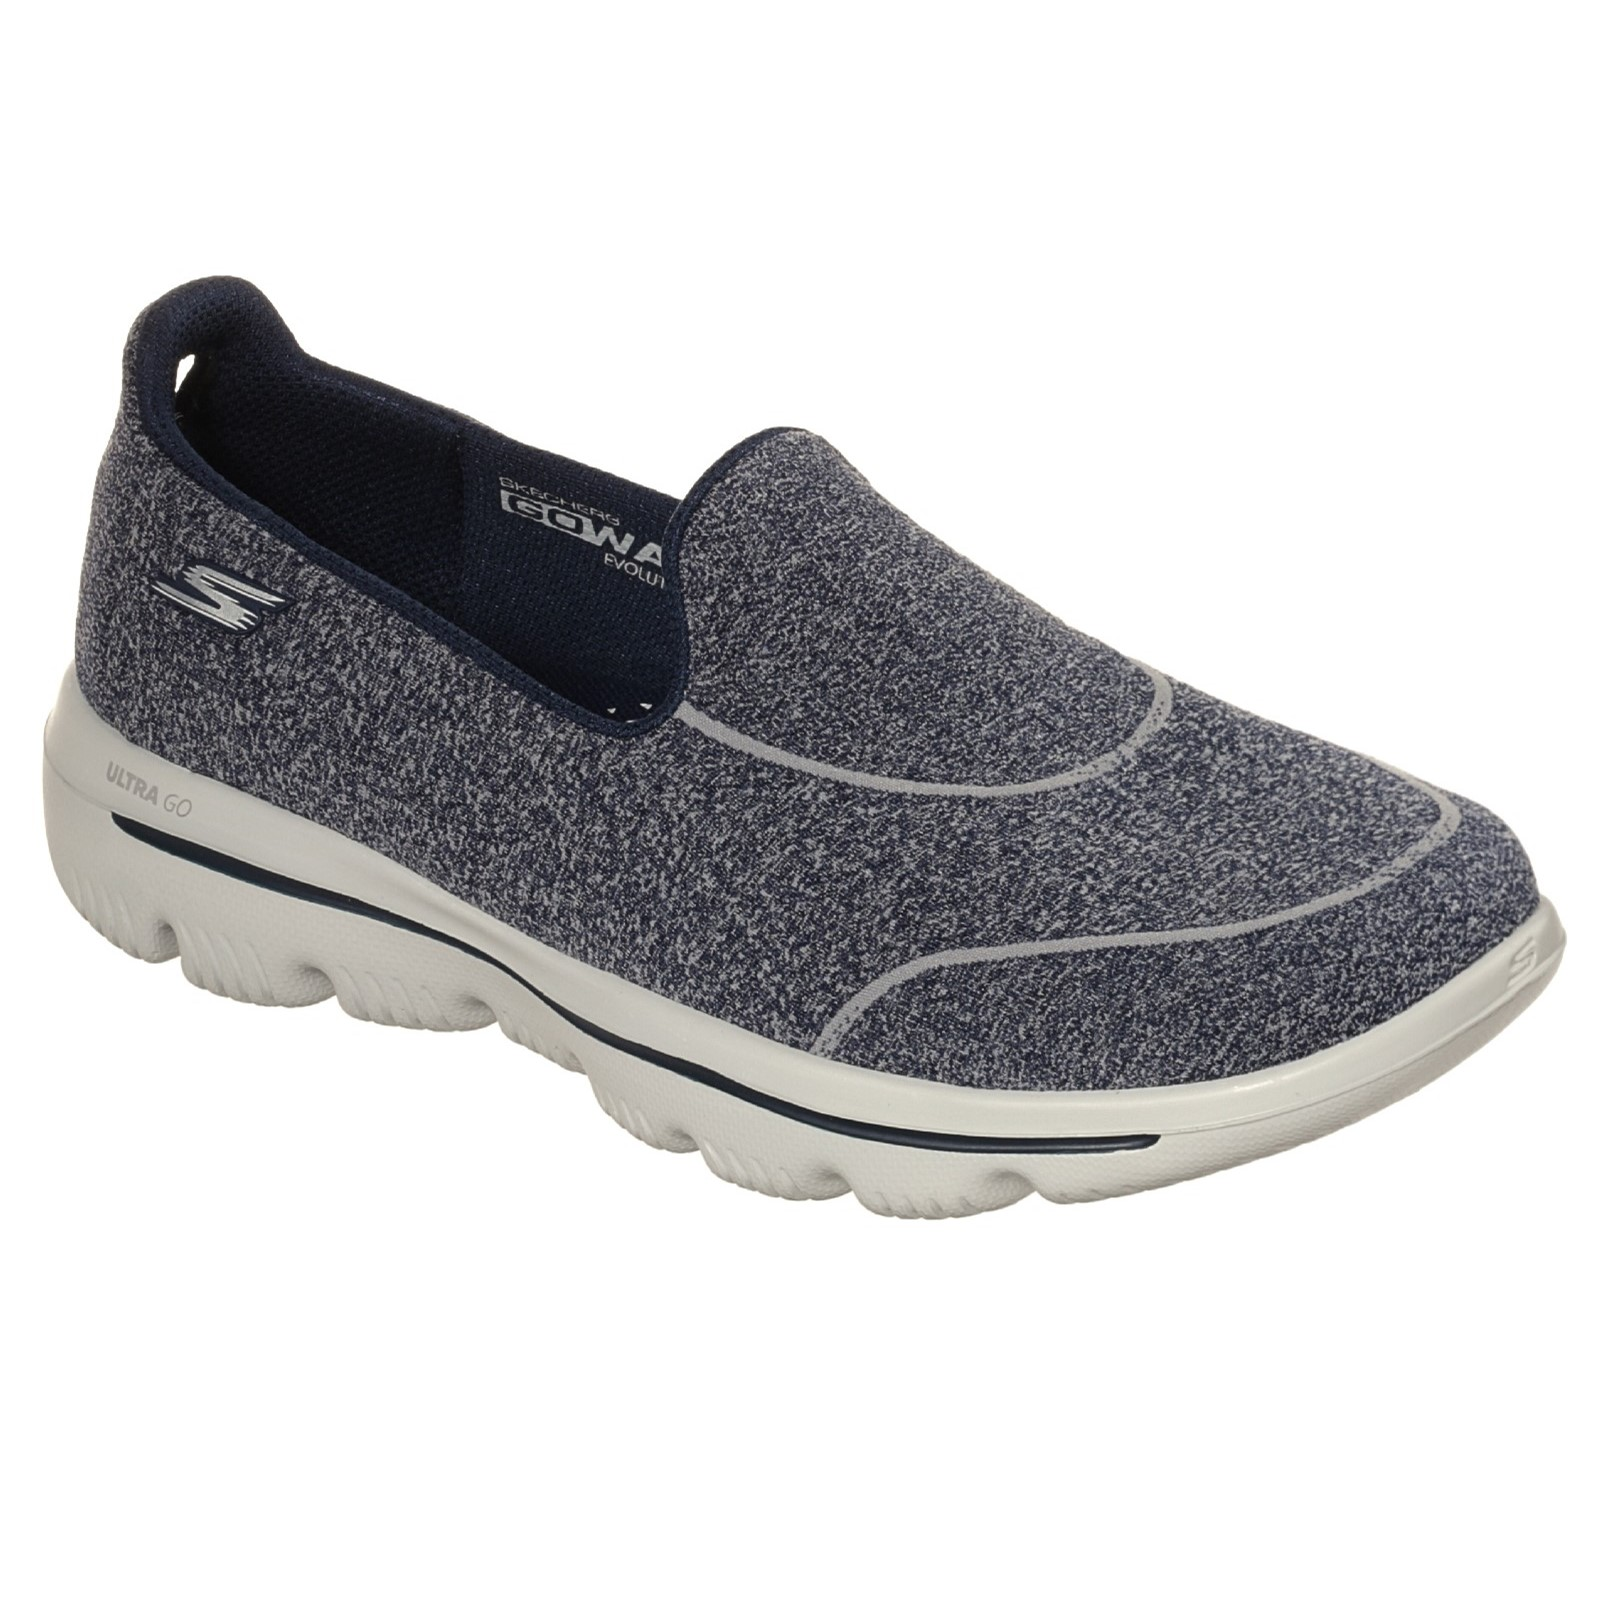 Skechers Womens Go Walk Evolution Ultra-dedicate socknit 360 Slipper